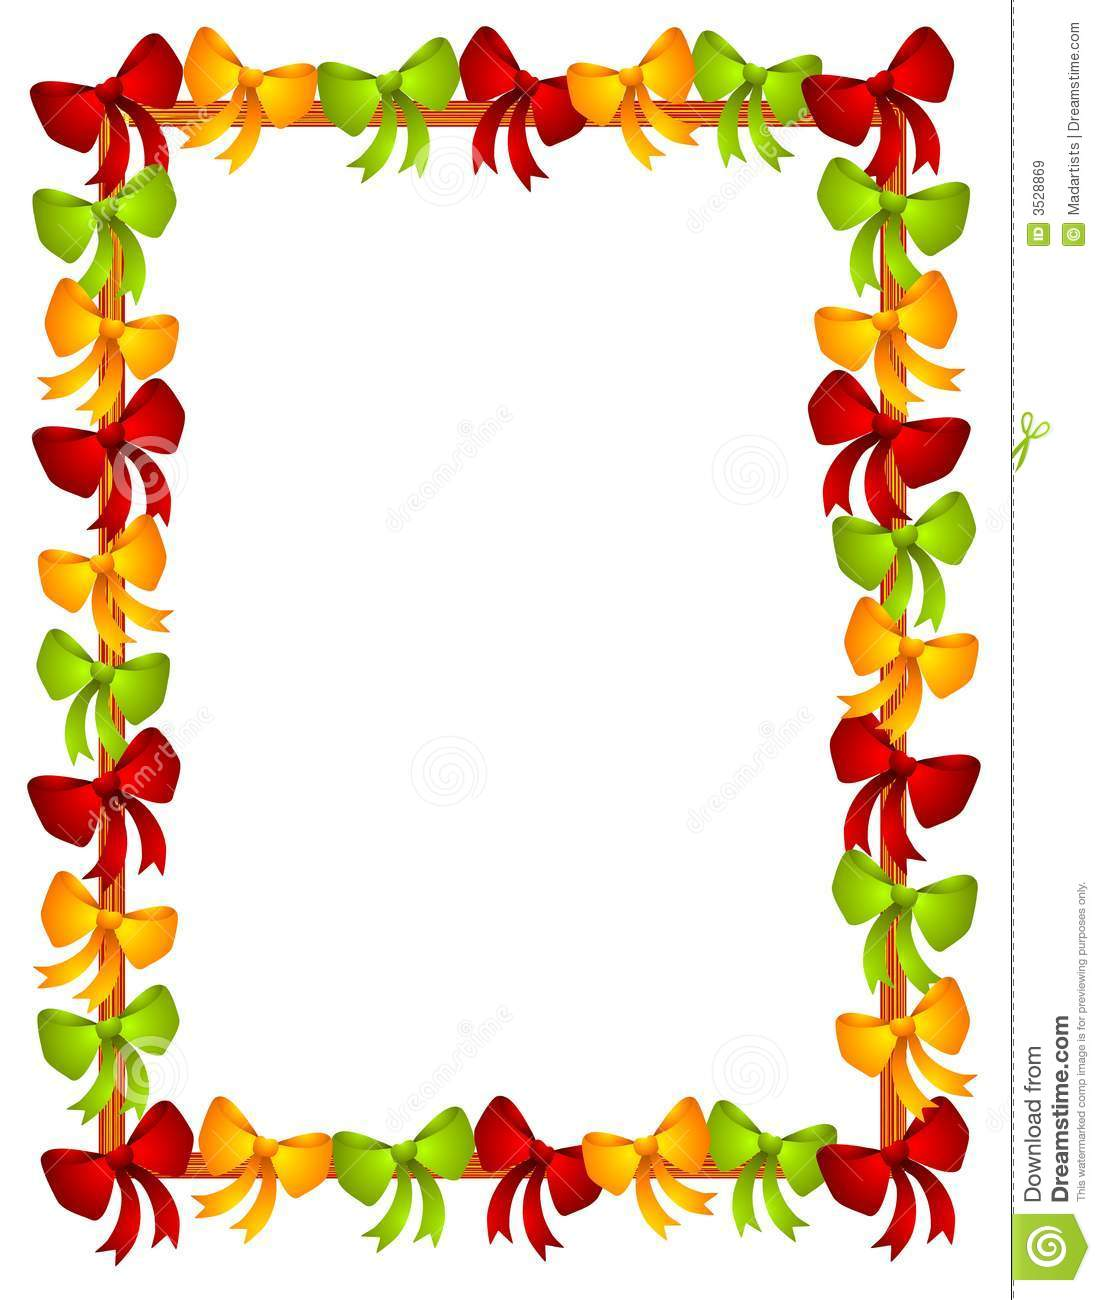 Clipart christmas lights borders clipart panda free clipart images